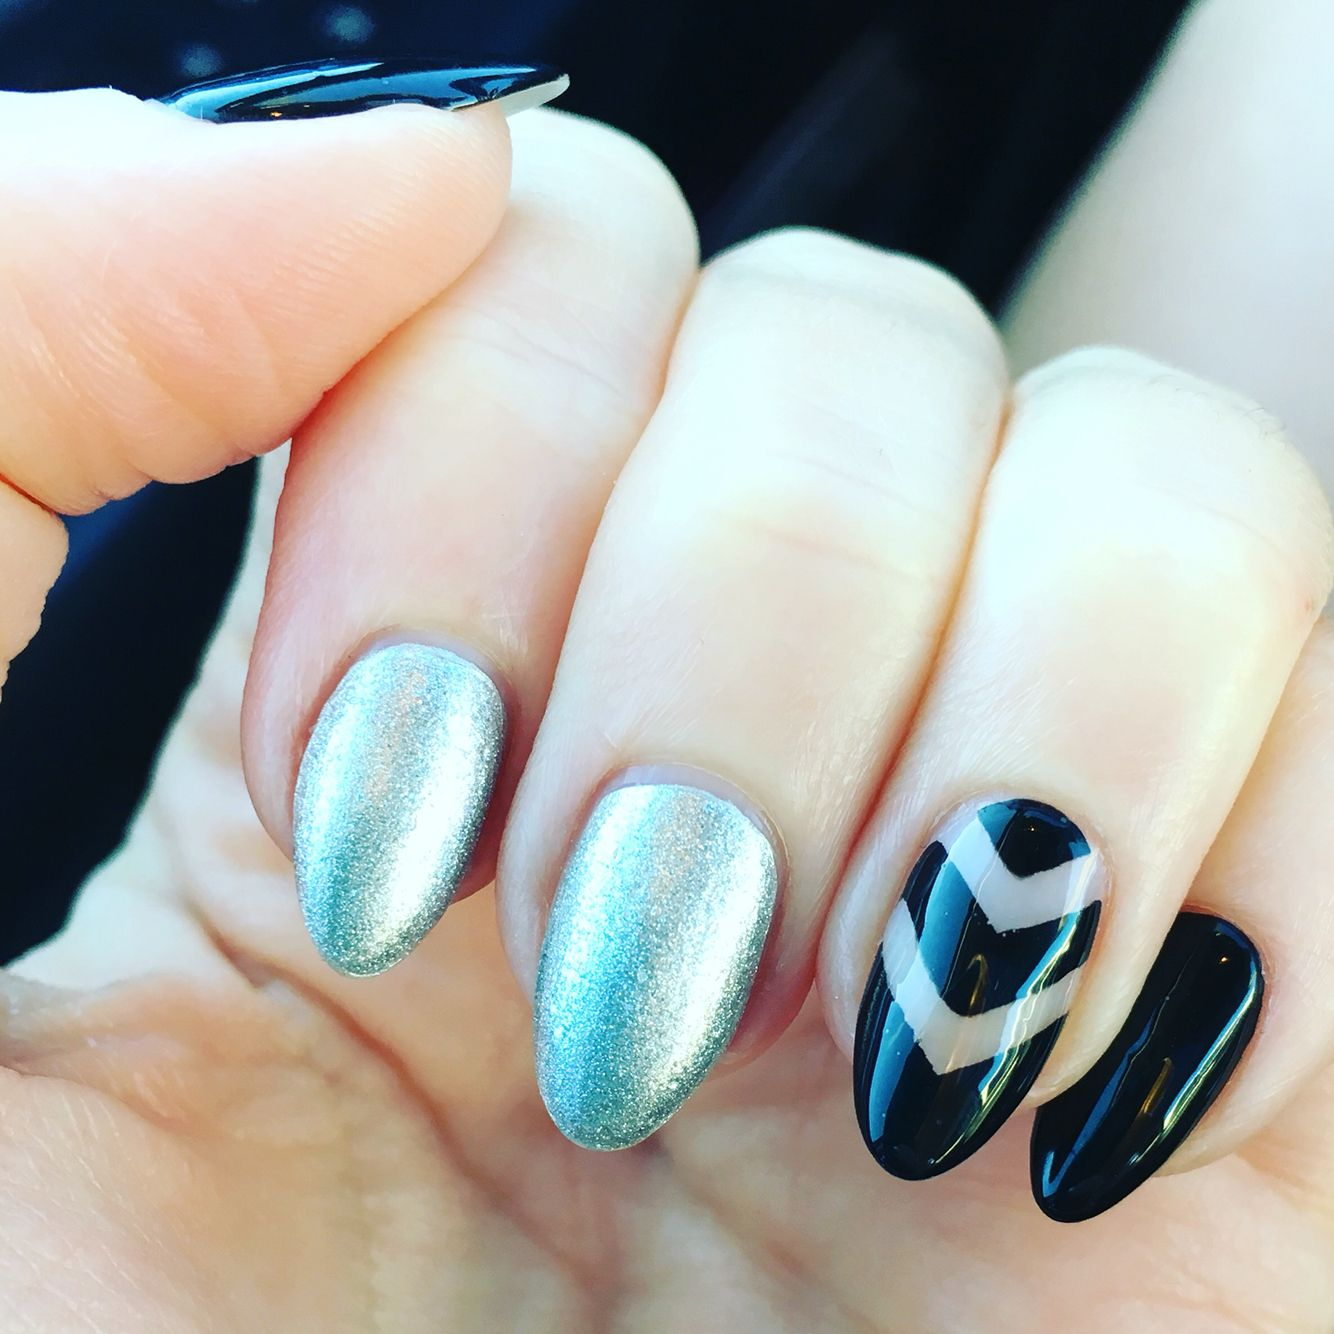 Nail art : silver and black with negative space | Aubrey\'s Nail Art ...